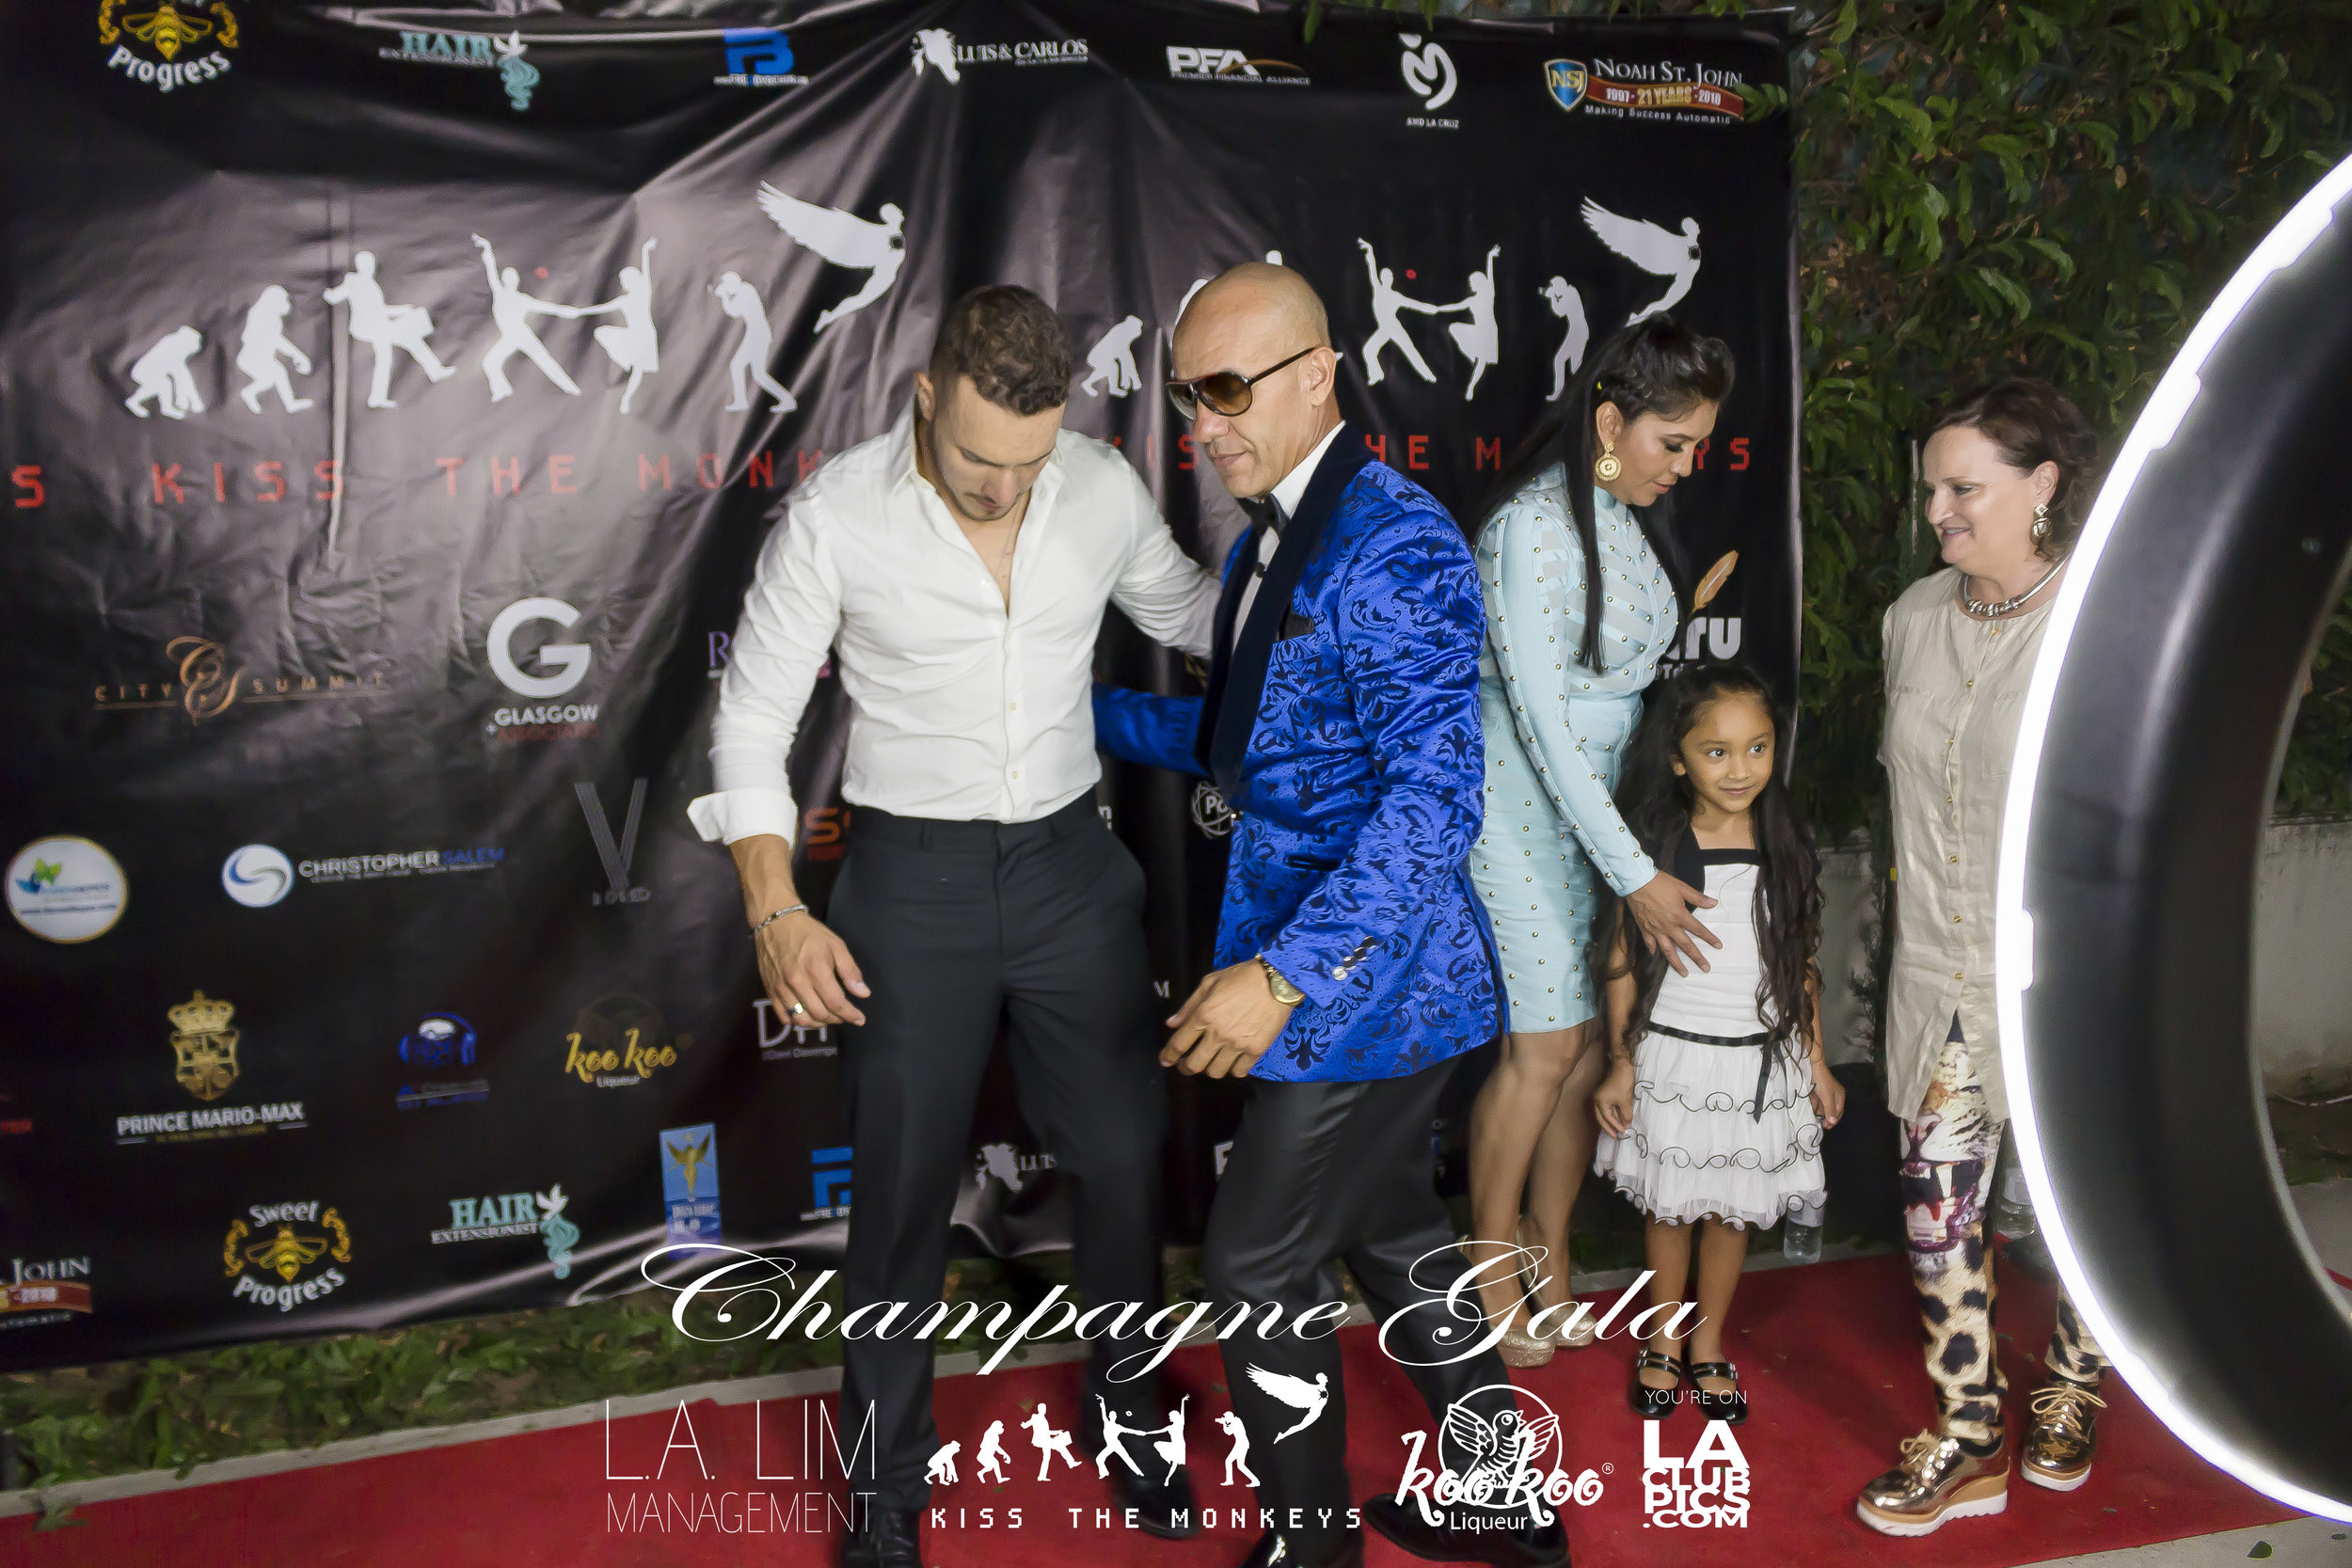 Kiss The Monkeys - Champagne Gala - 07-21-18_153.jpg